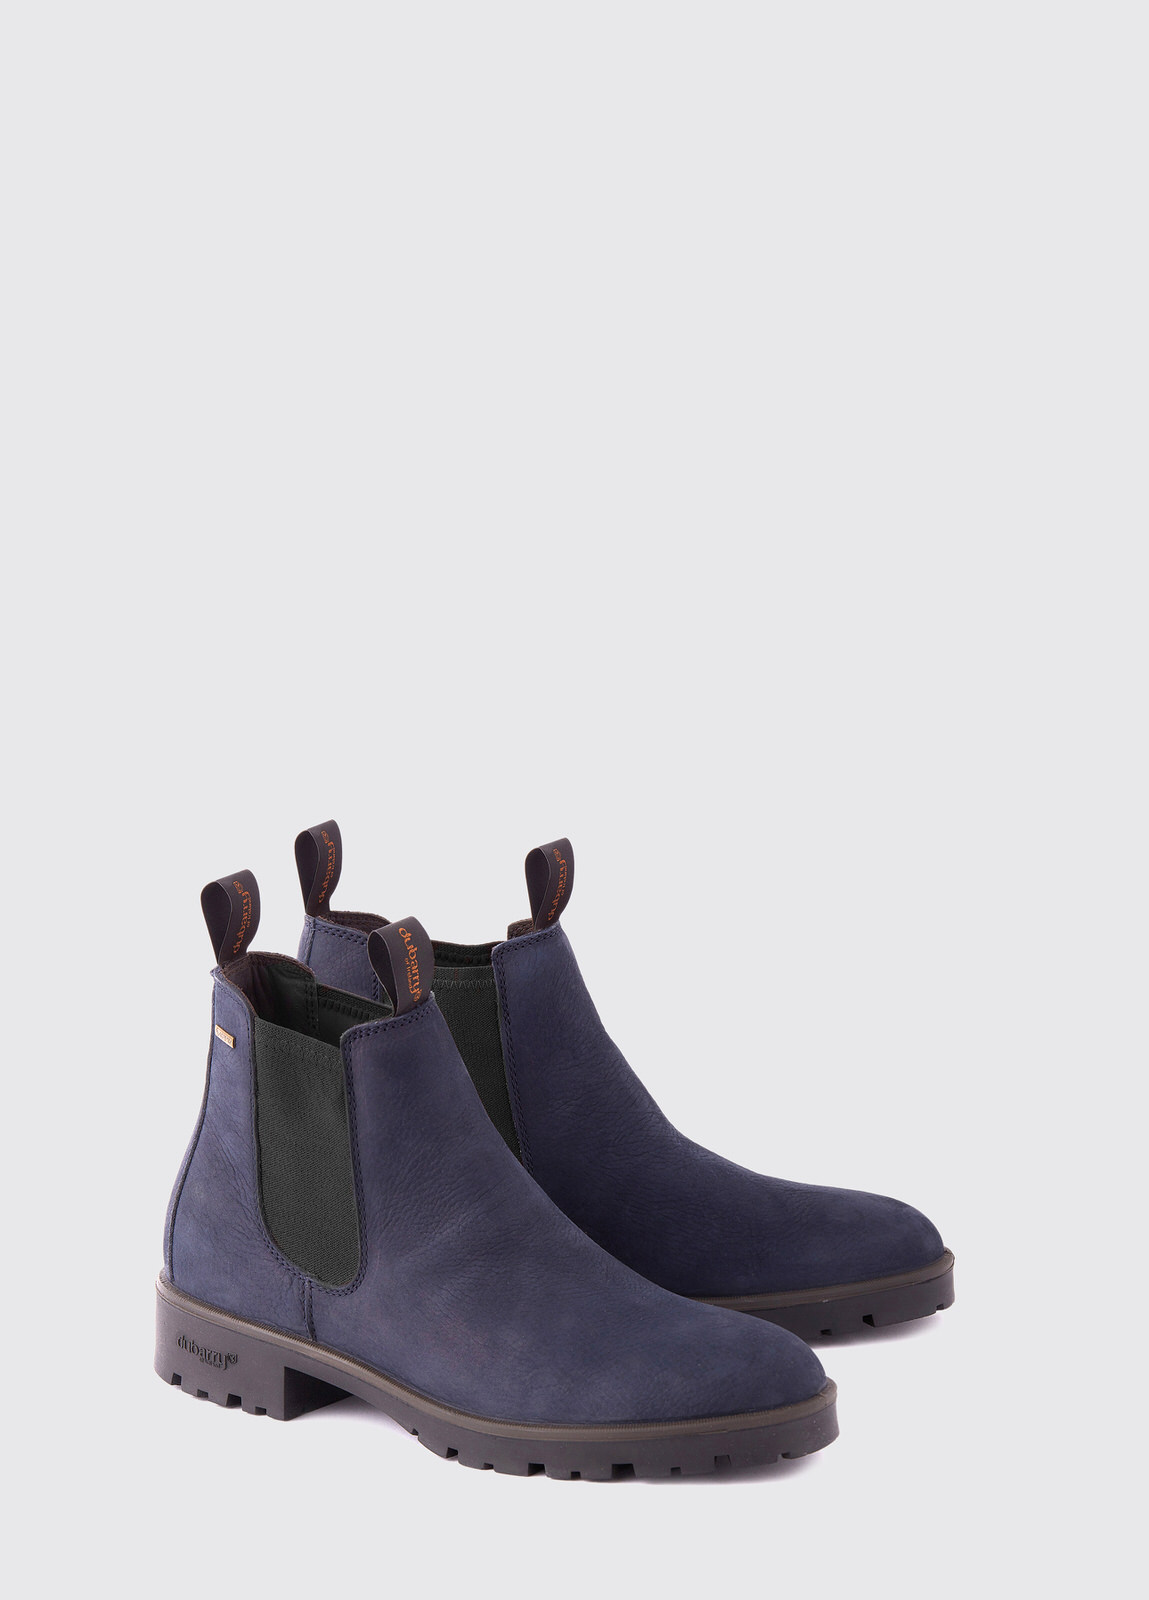 Antrim Country Boot - Navy